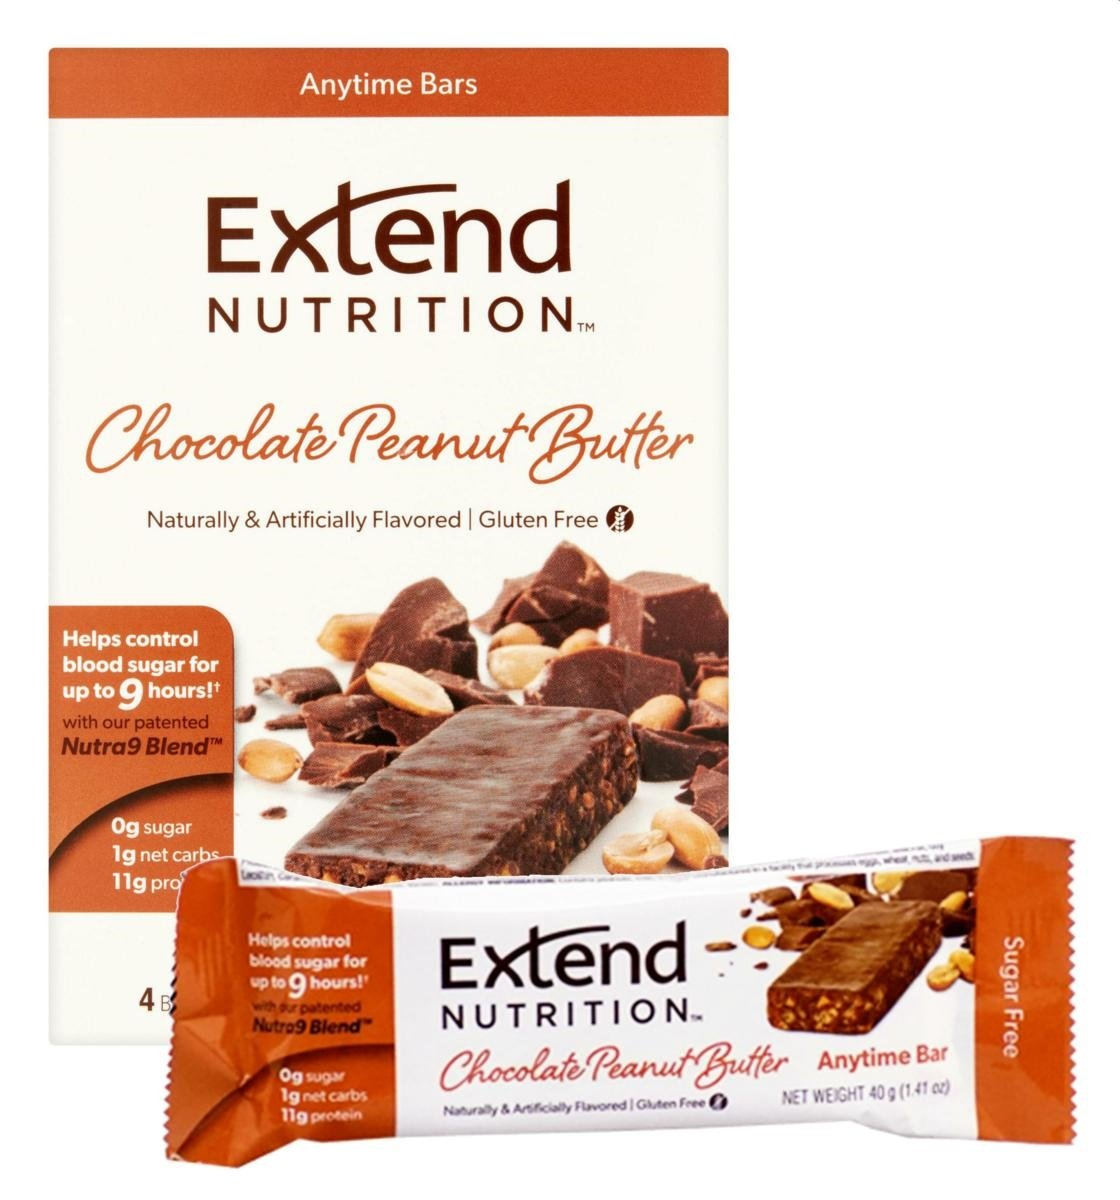 Extend Bar, Chocolate Peanut Butter, 1.41 oz. Bars Pack of 15